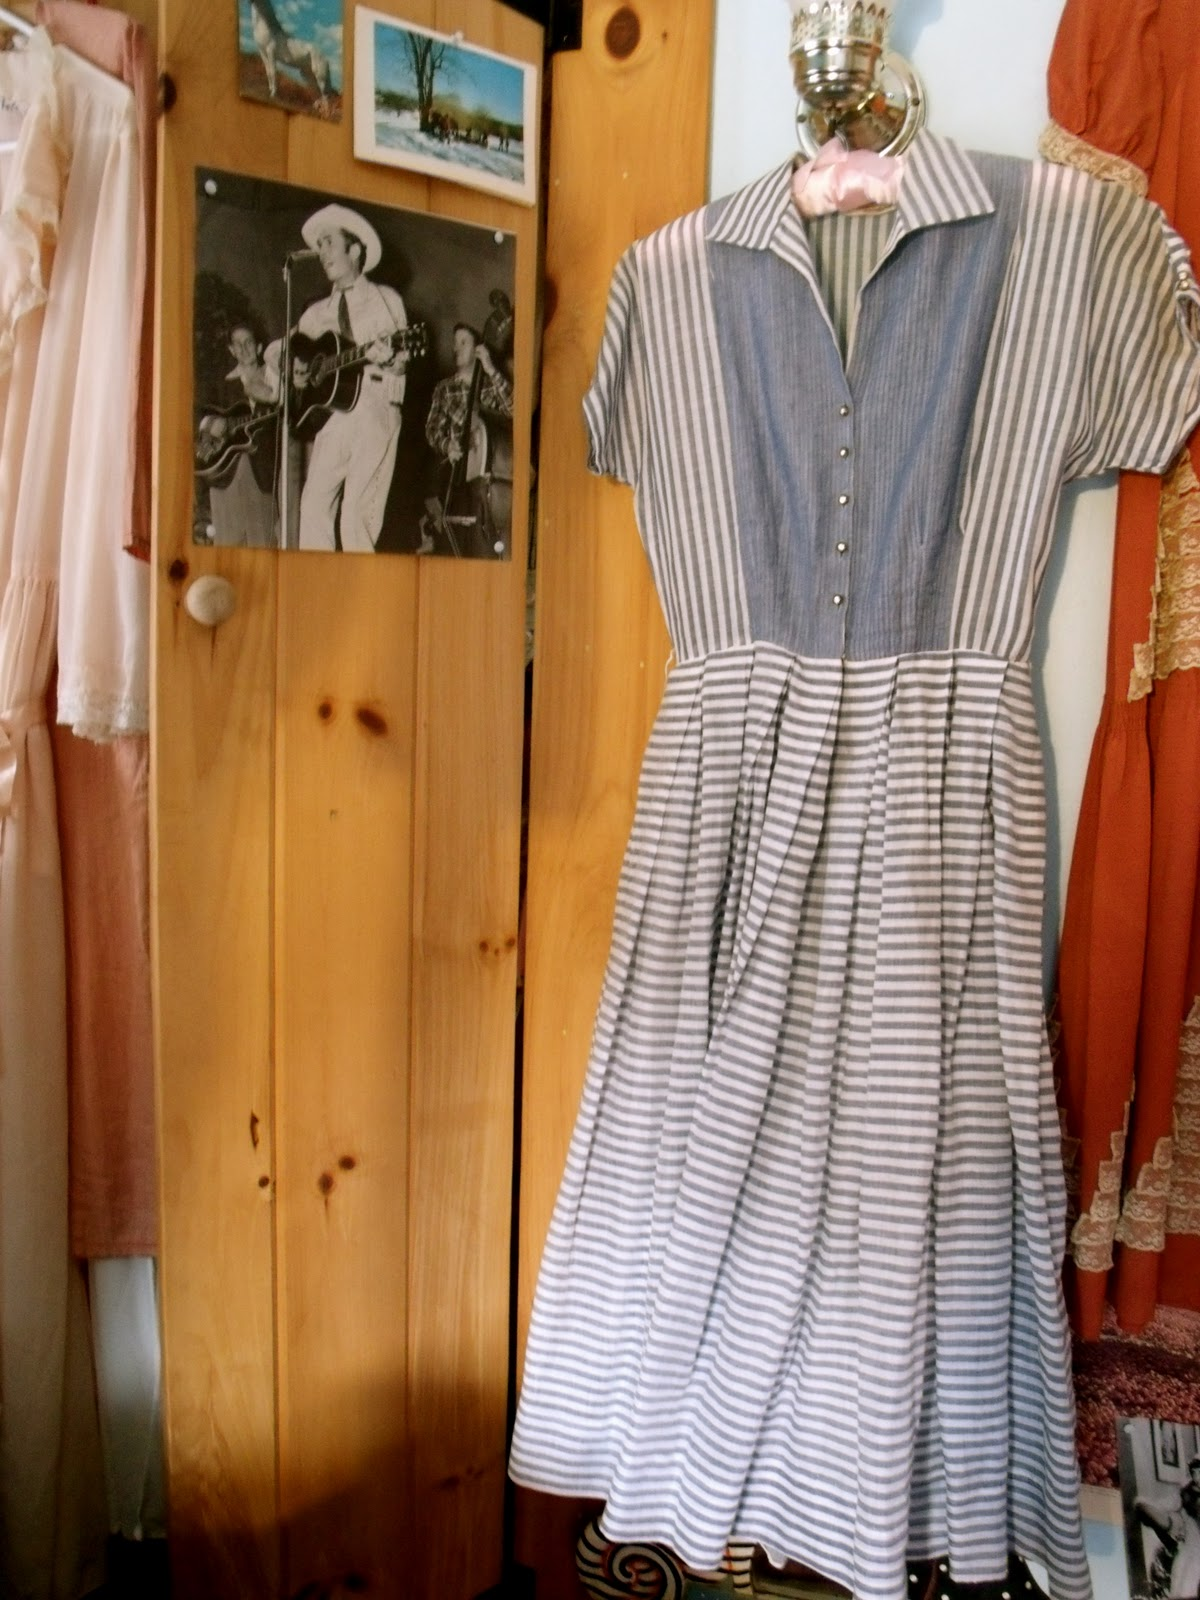 Charming Warm Weather Vintage Inspired Frocks Featuring: Sweetheart Of The Rodeo: Summertime Blues